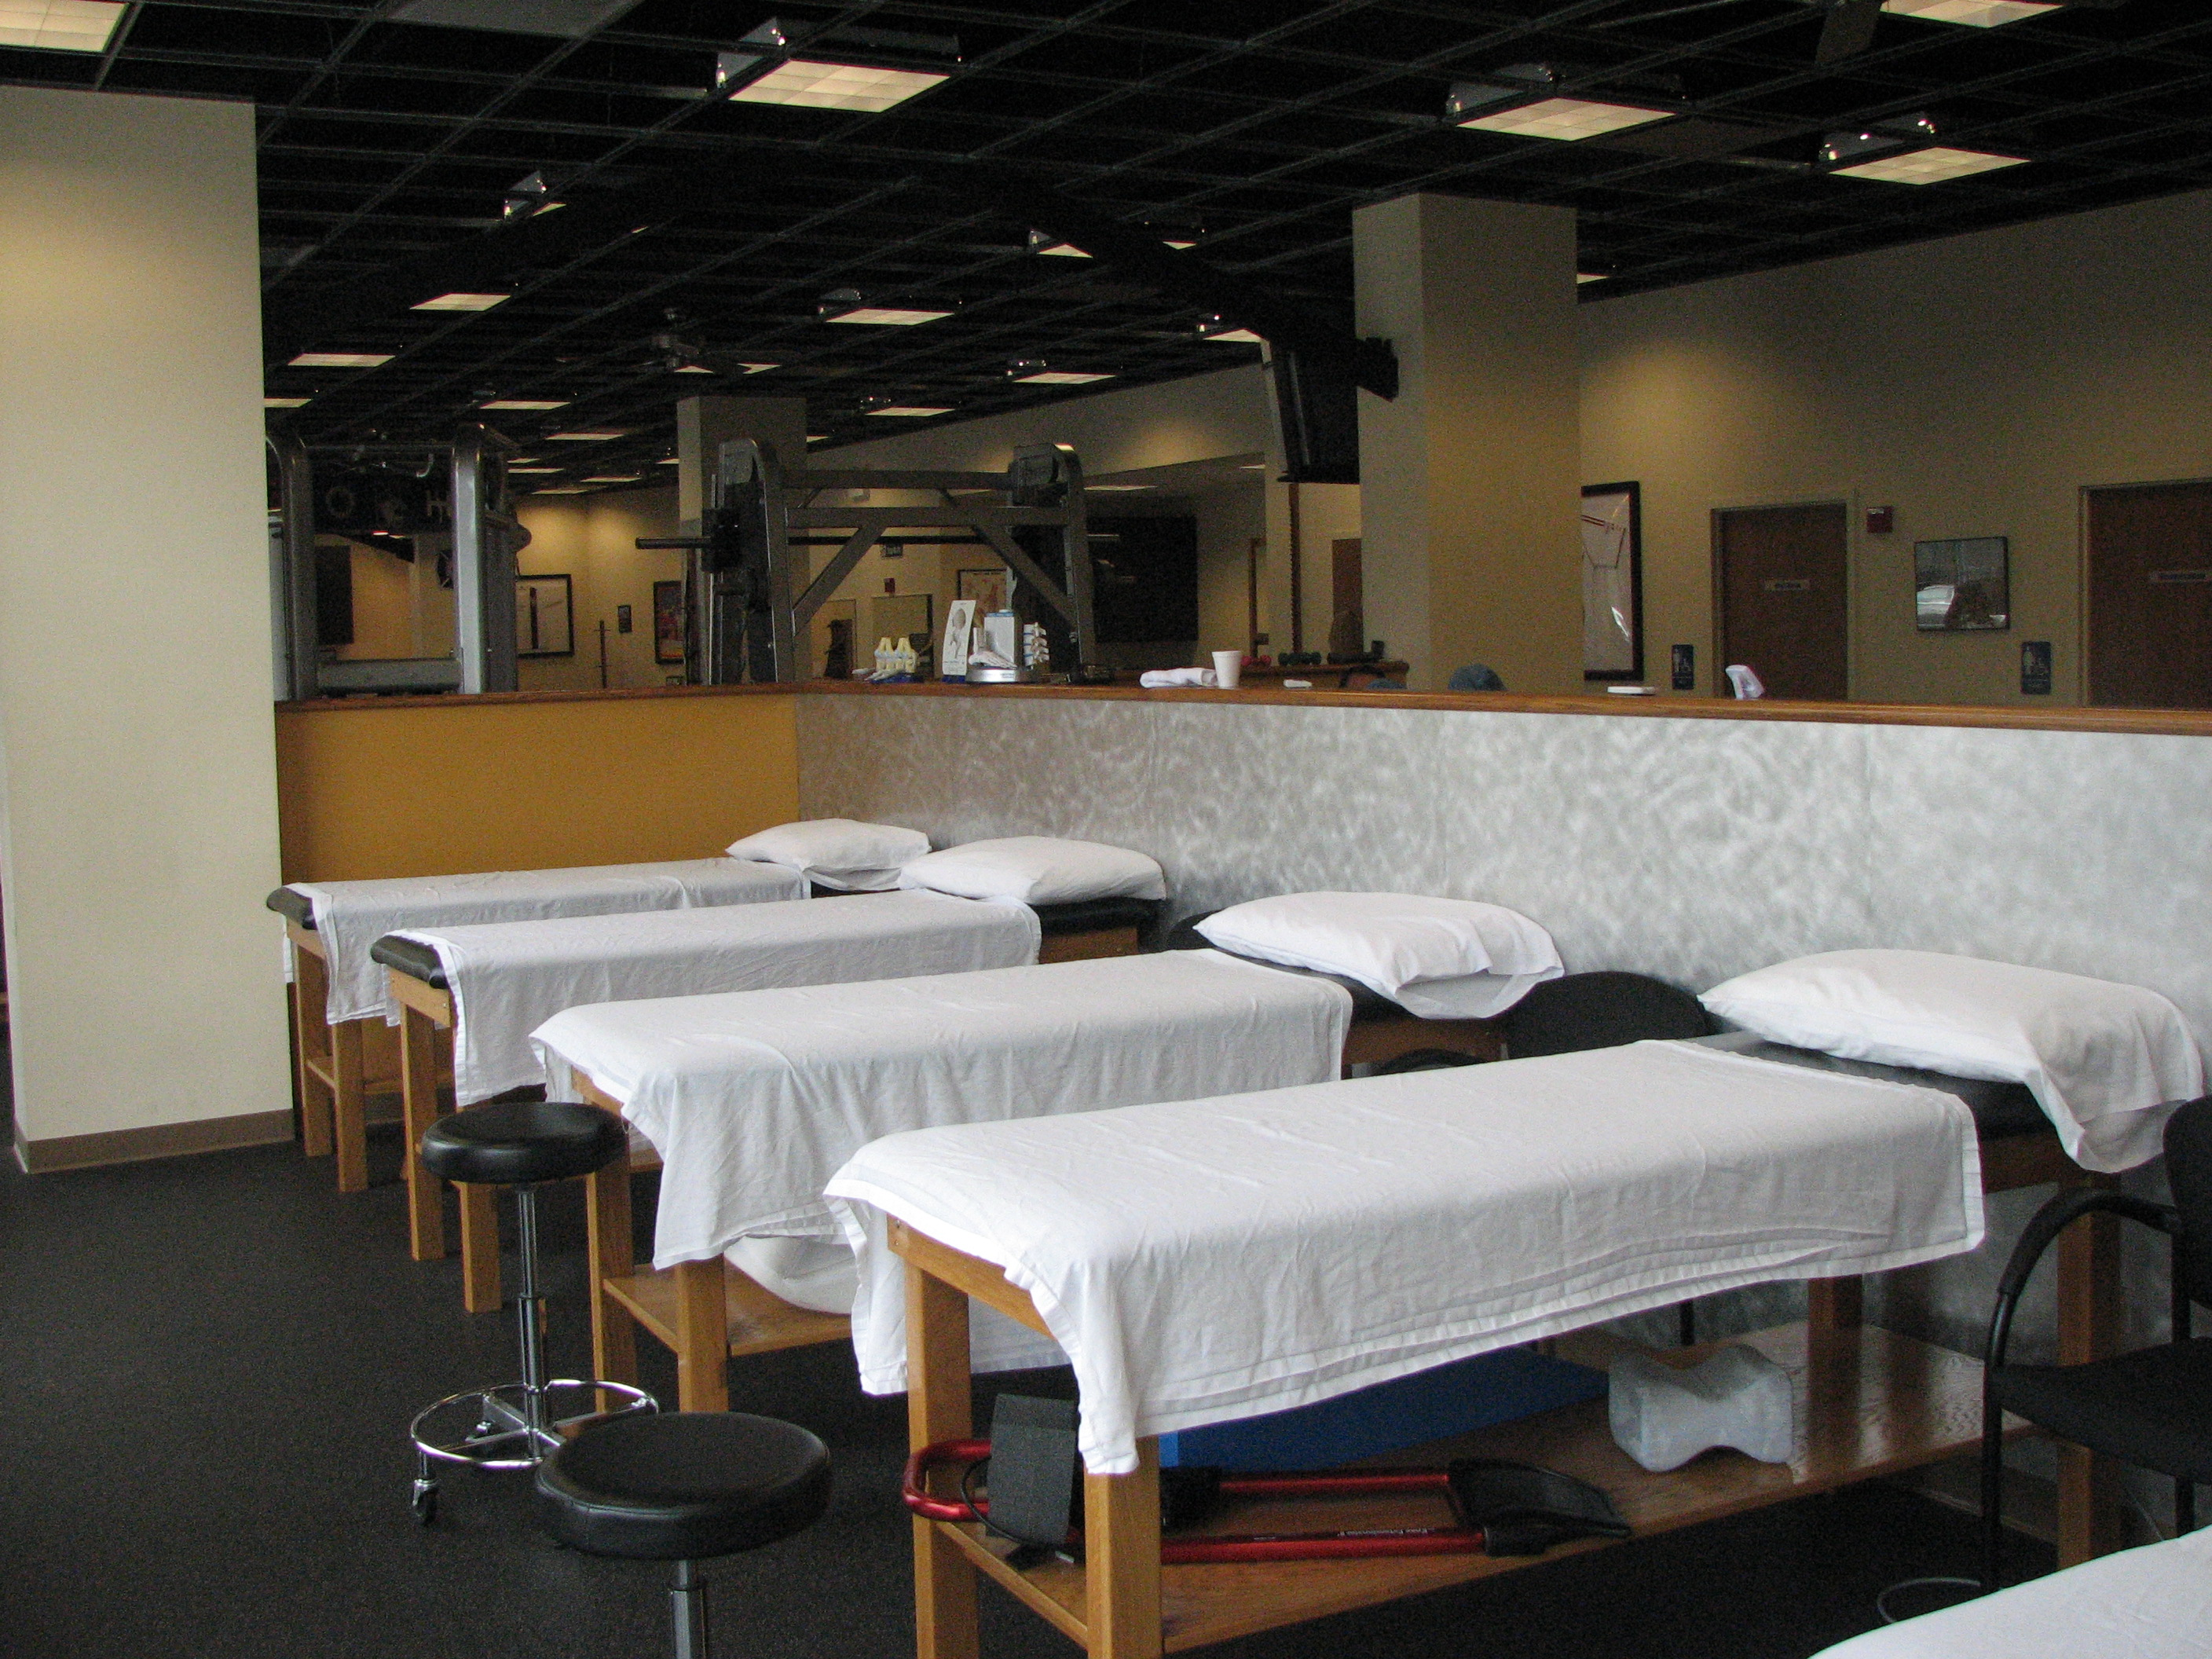 Glenview california physical therapy - South Loop Treatment Area